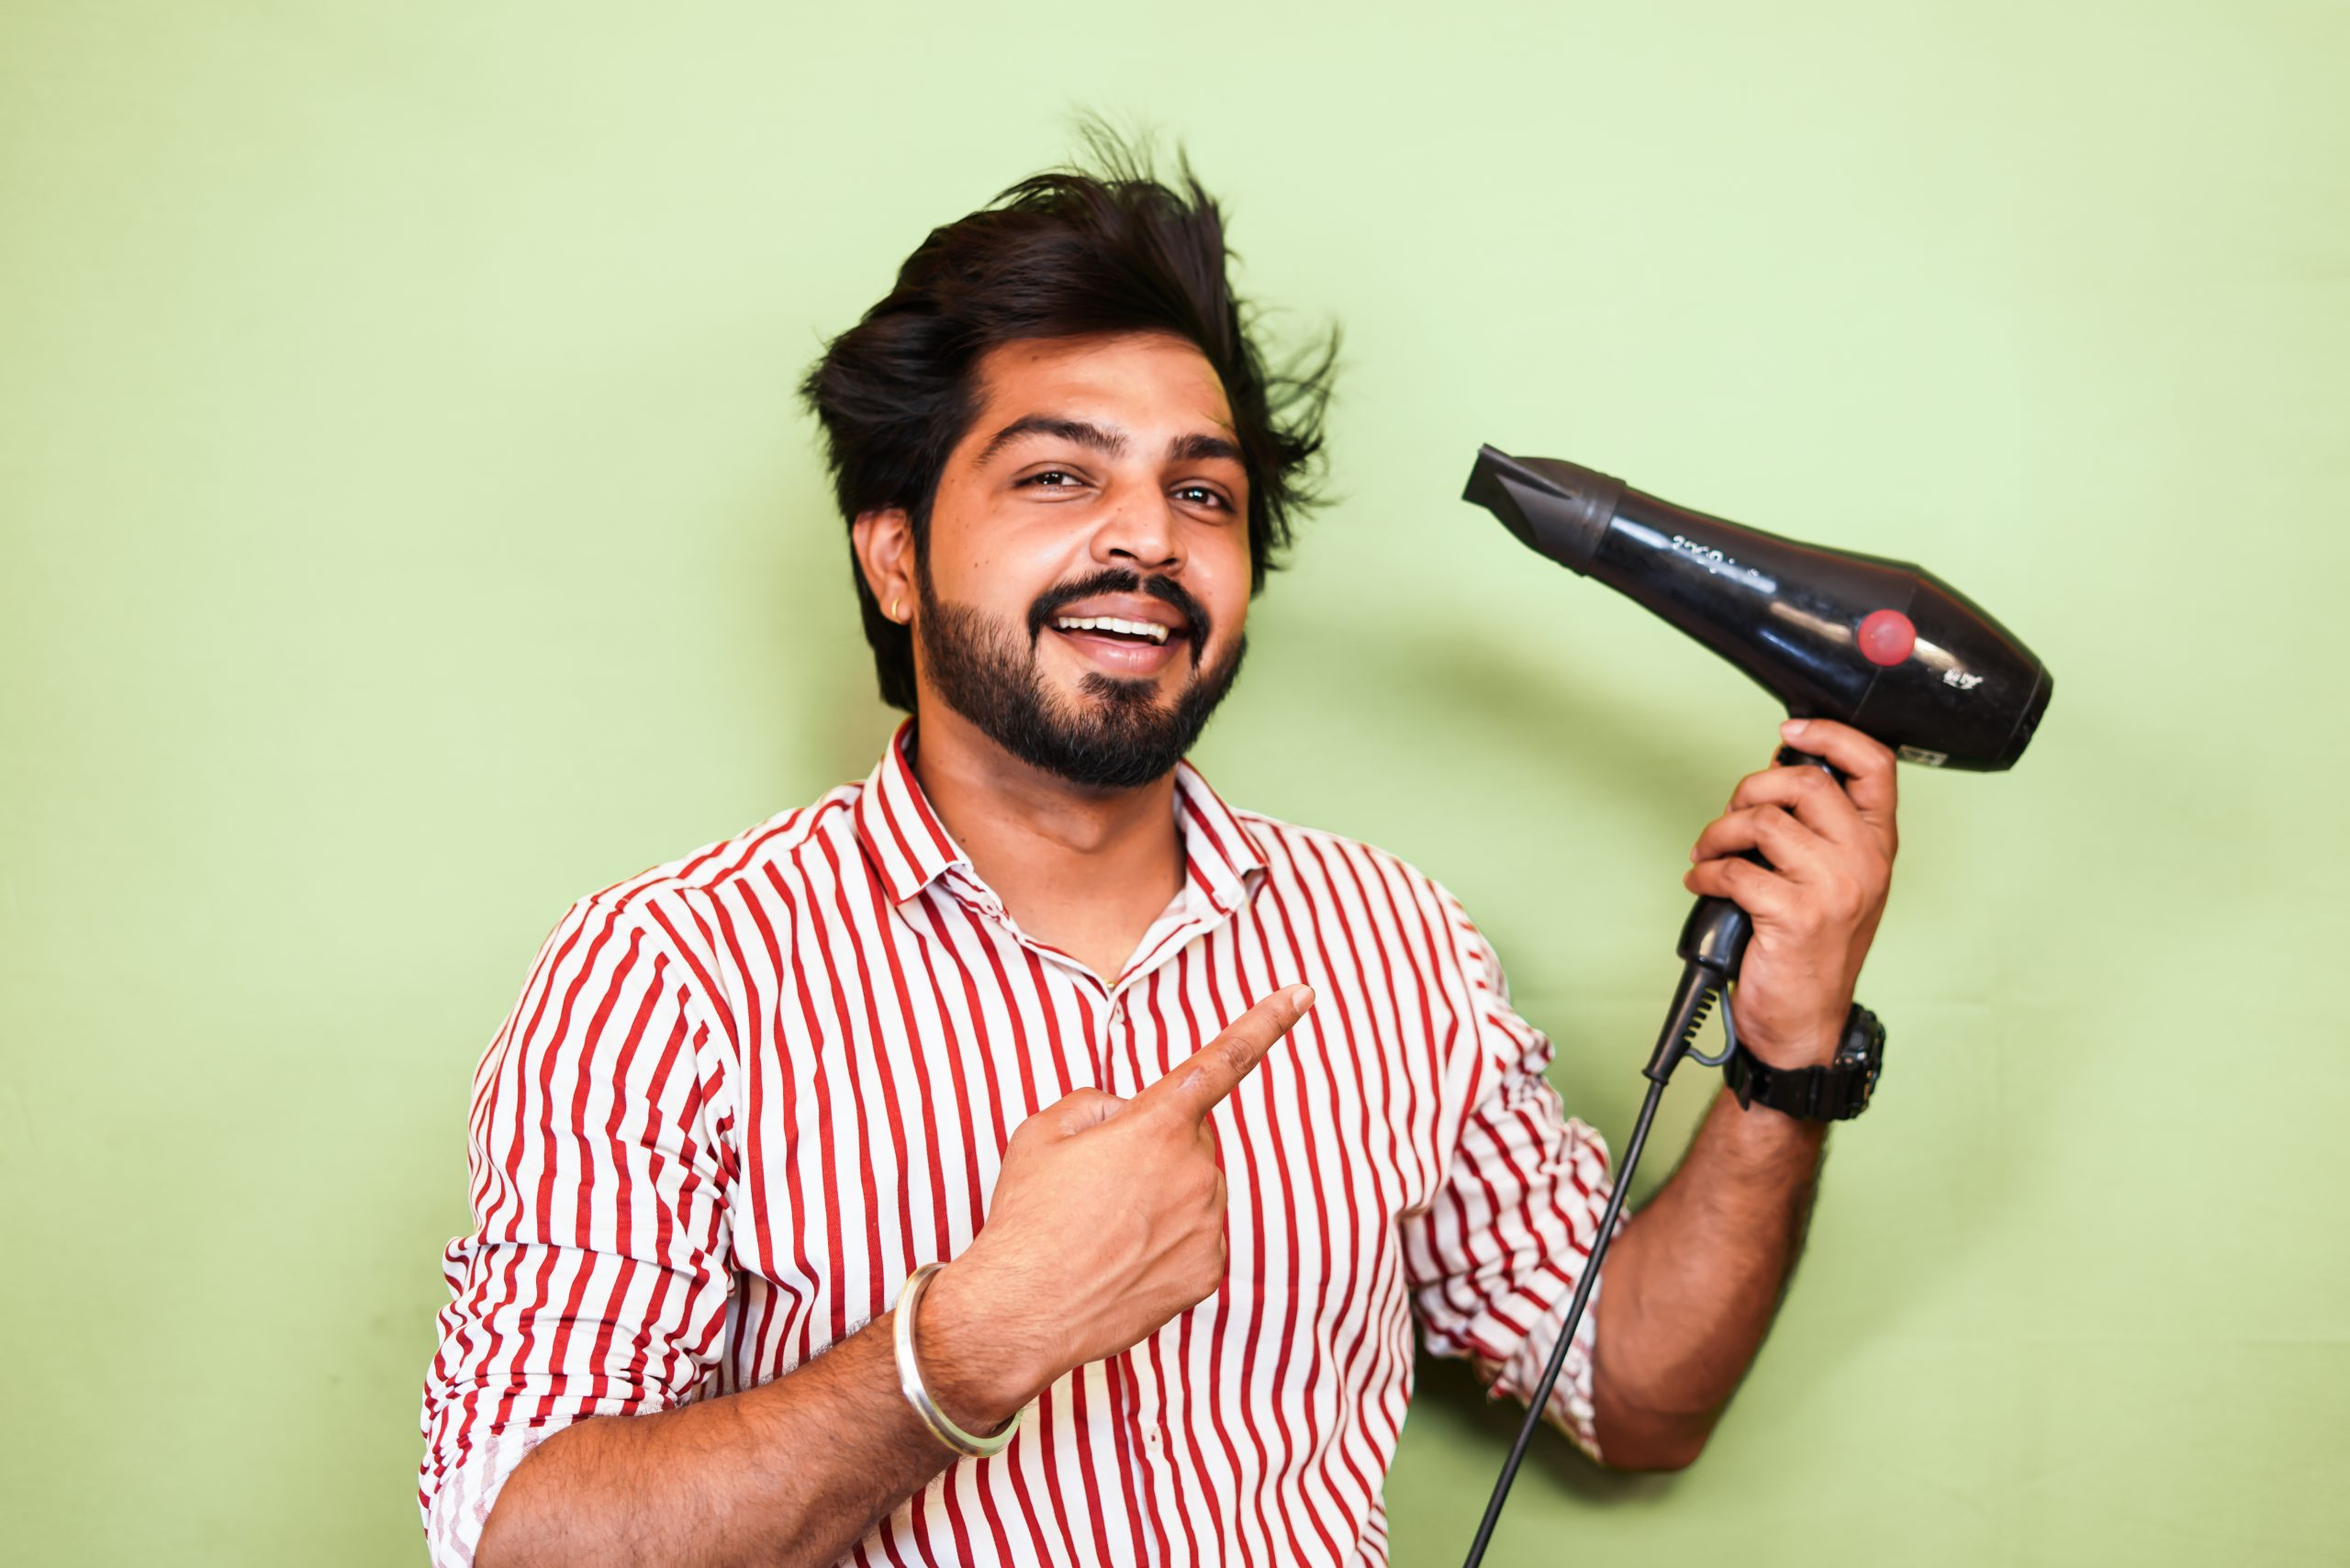 Man Pointing the Hair Dryer in his Hand